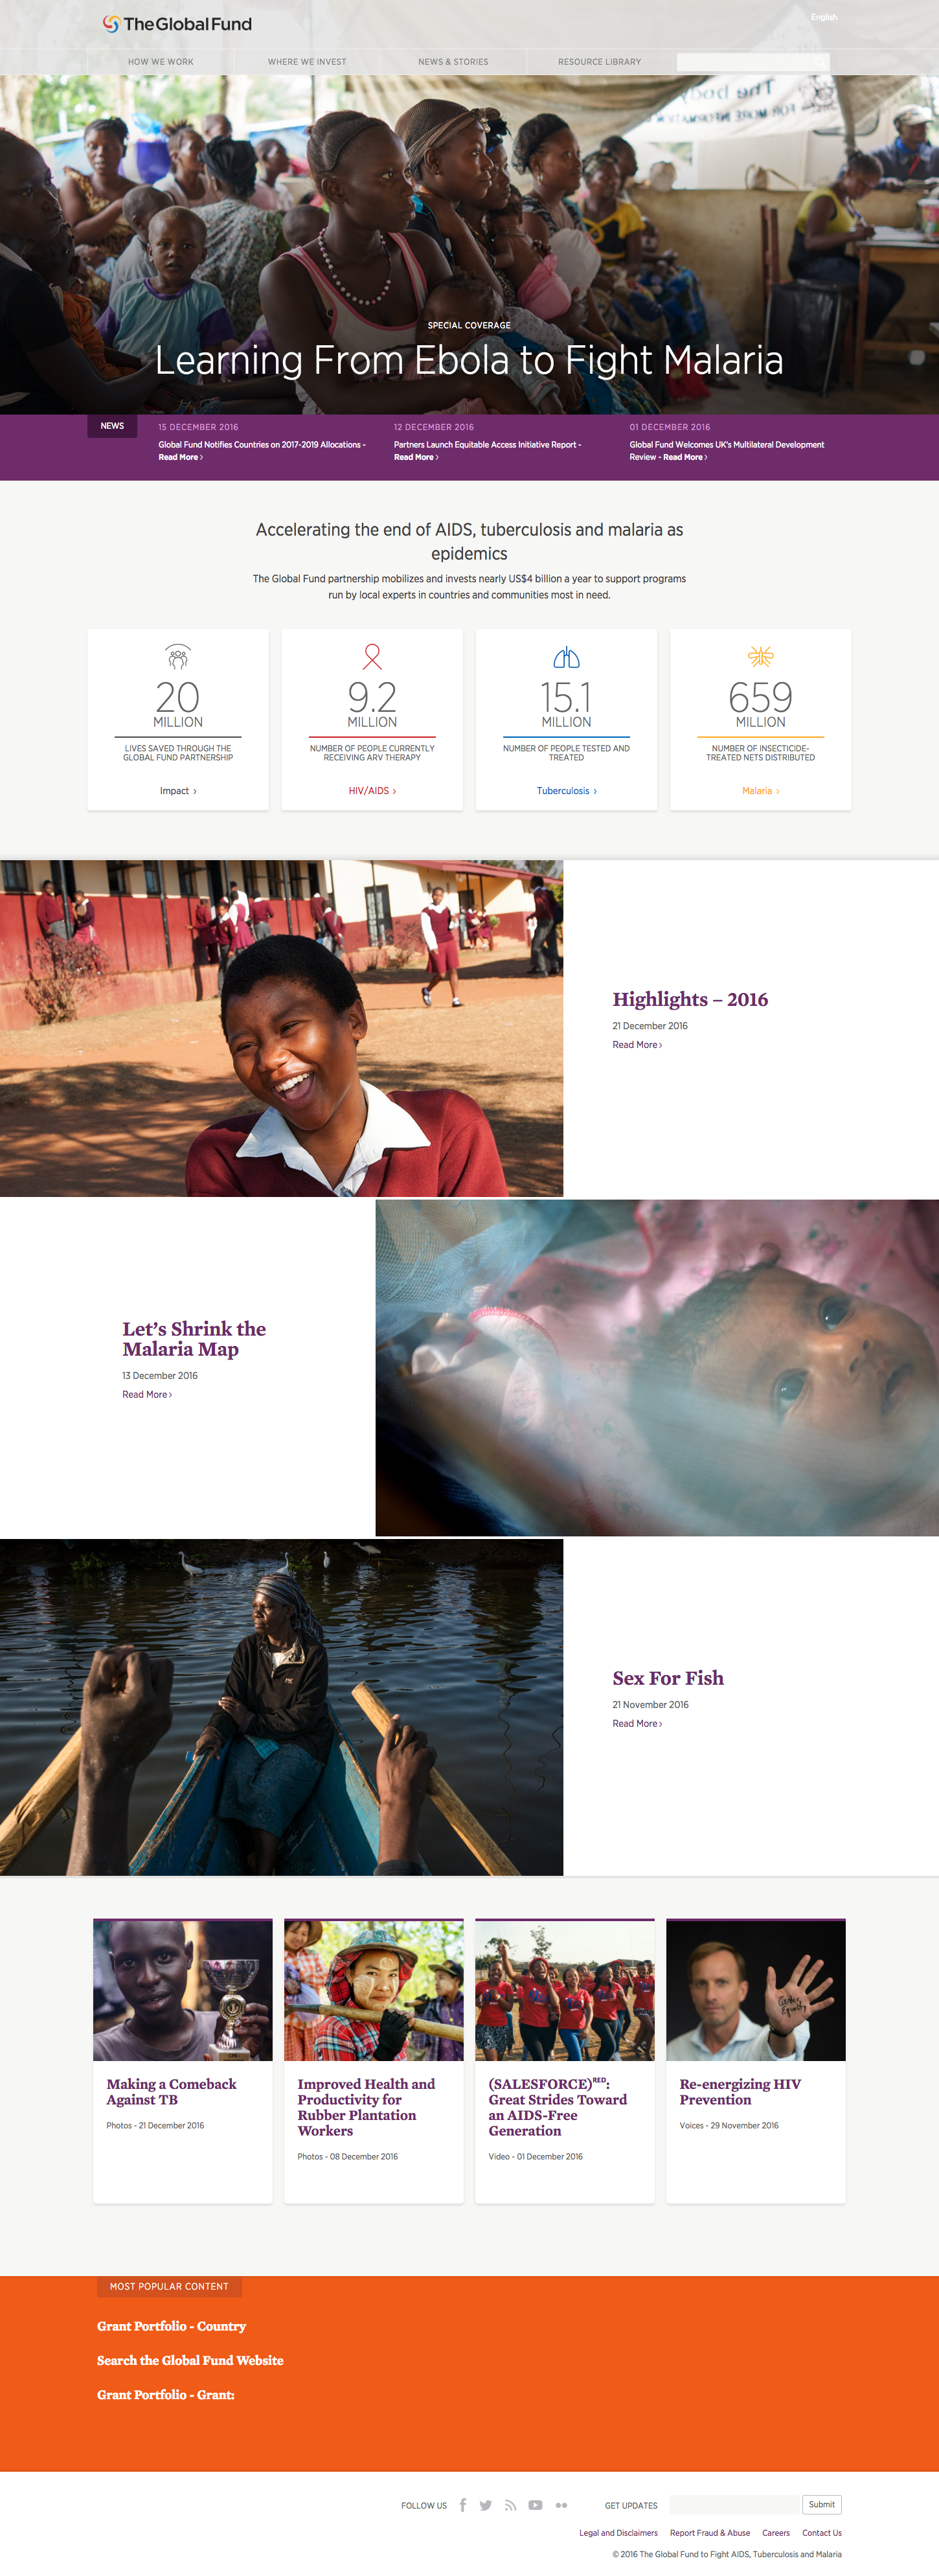 The new Global Fund website